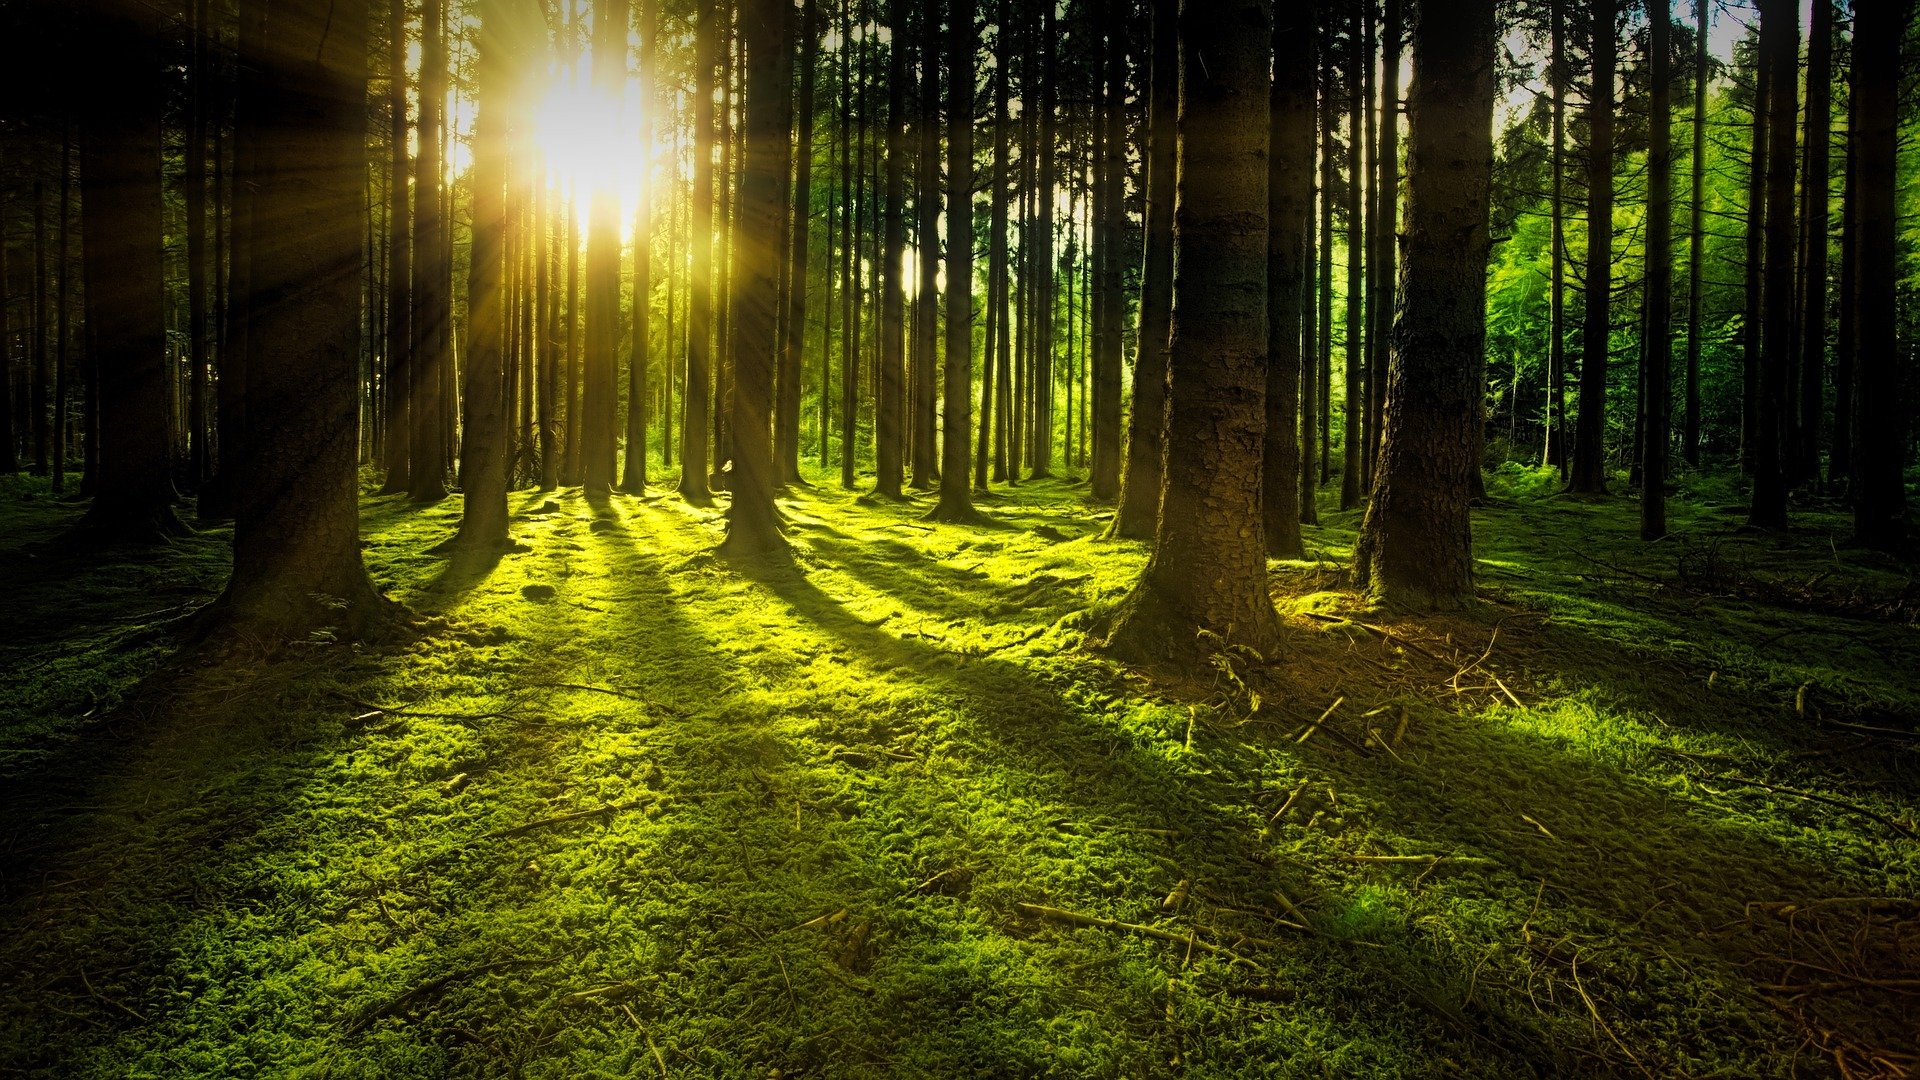 green grass and trees with the light shining through